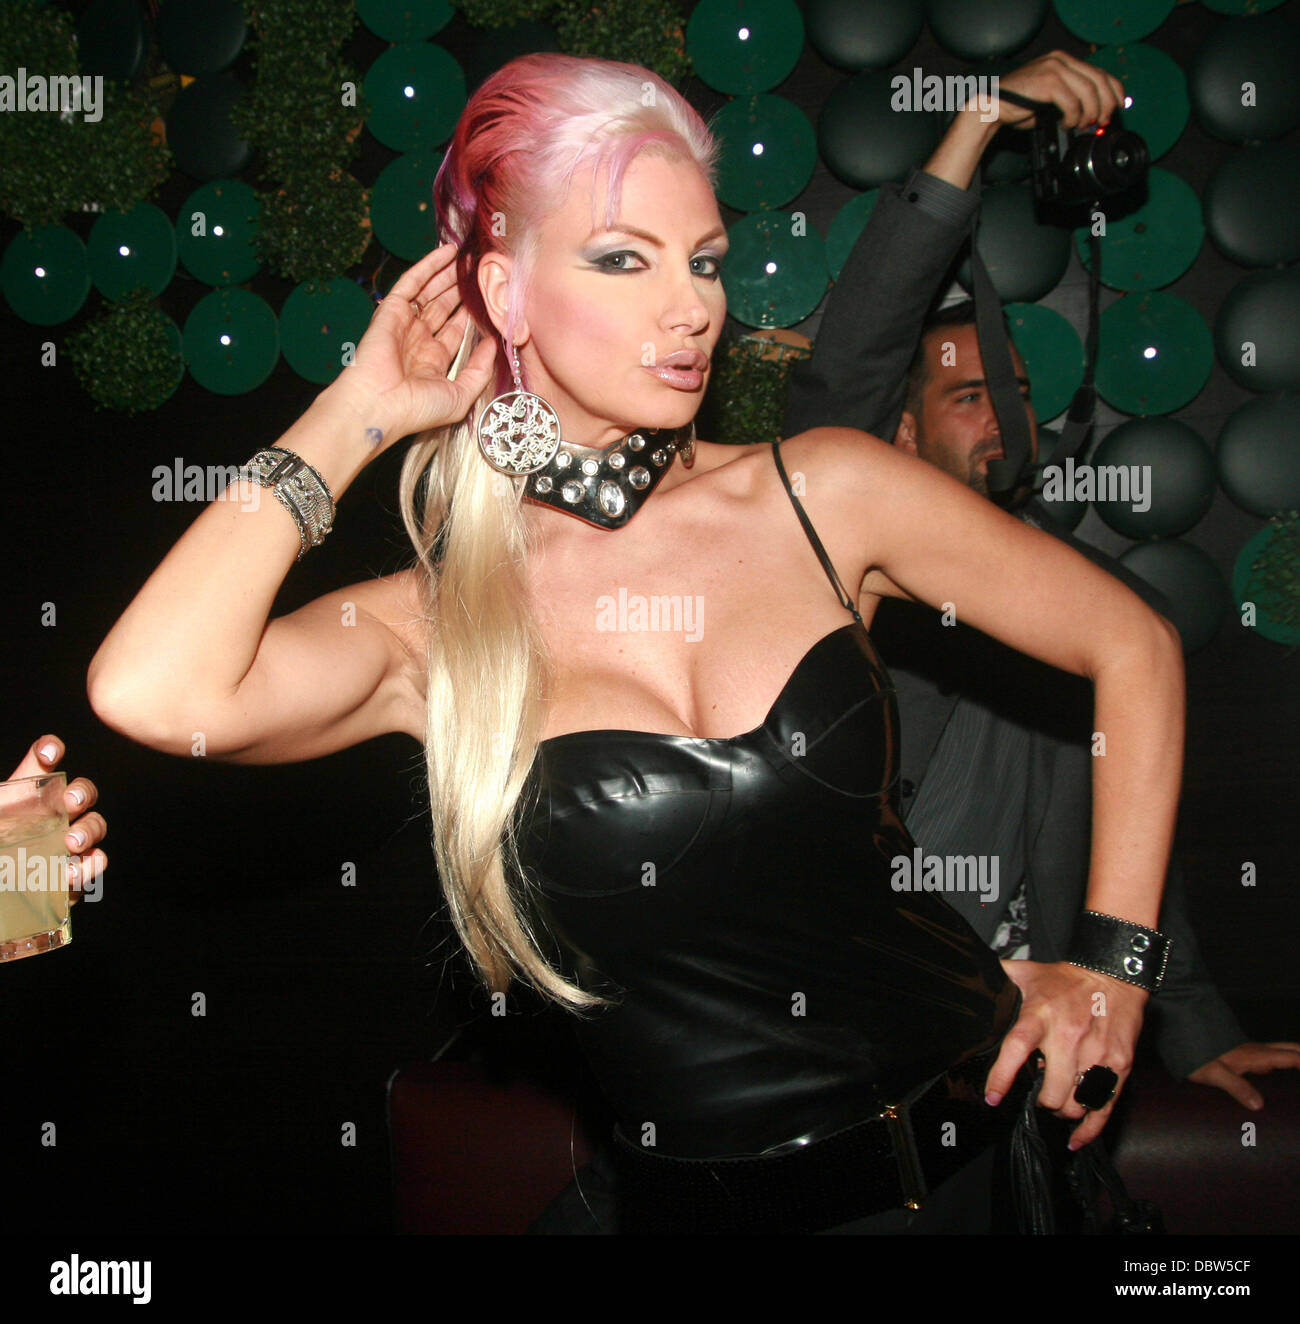 Alexis Ford brittany andrews greenhouse thursdays presents 'an end of